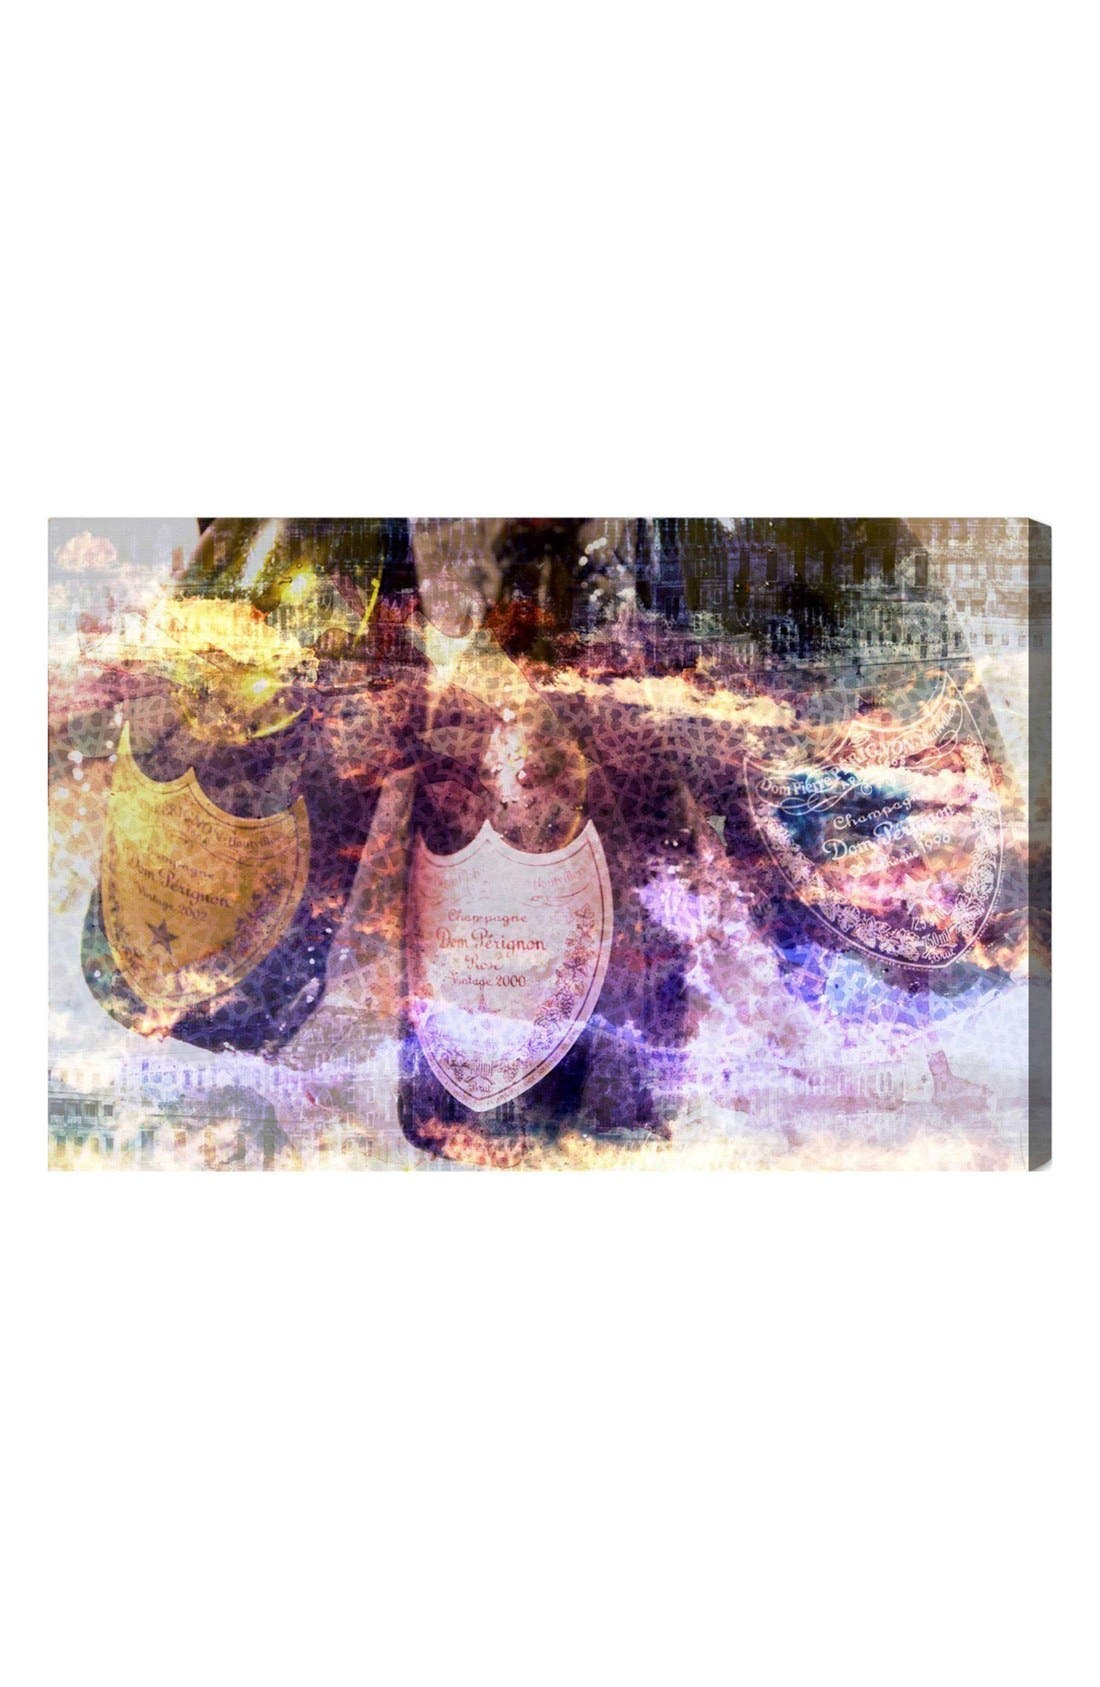 Alternate Image 1 Selected - Oliver Gal 'Champagne Bath' Canvas Wall Art